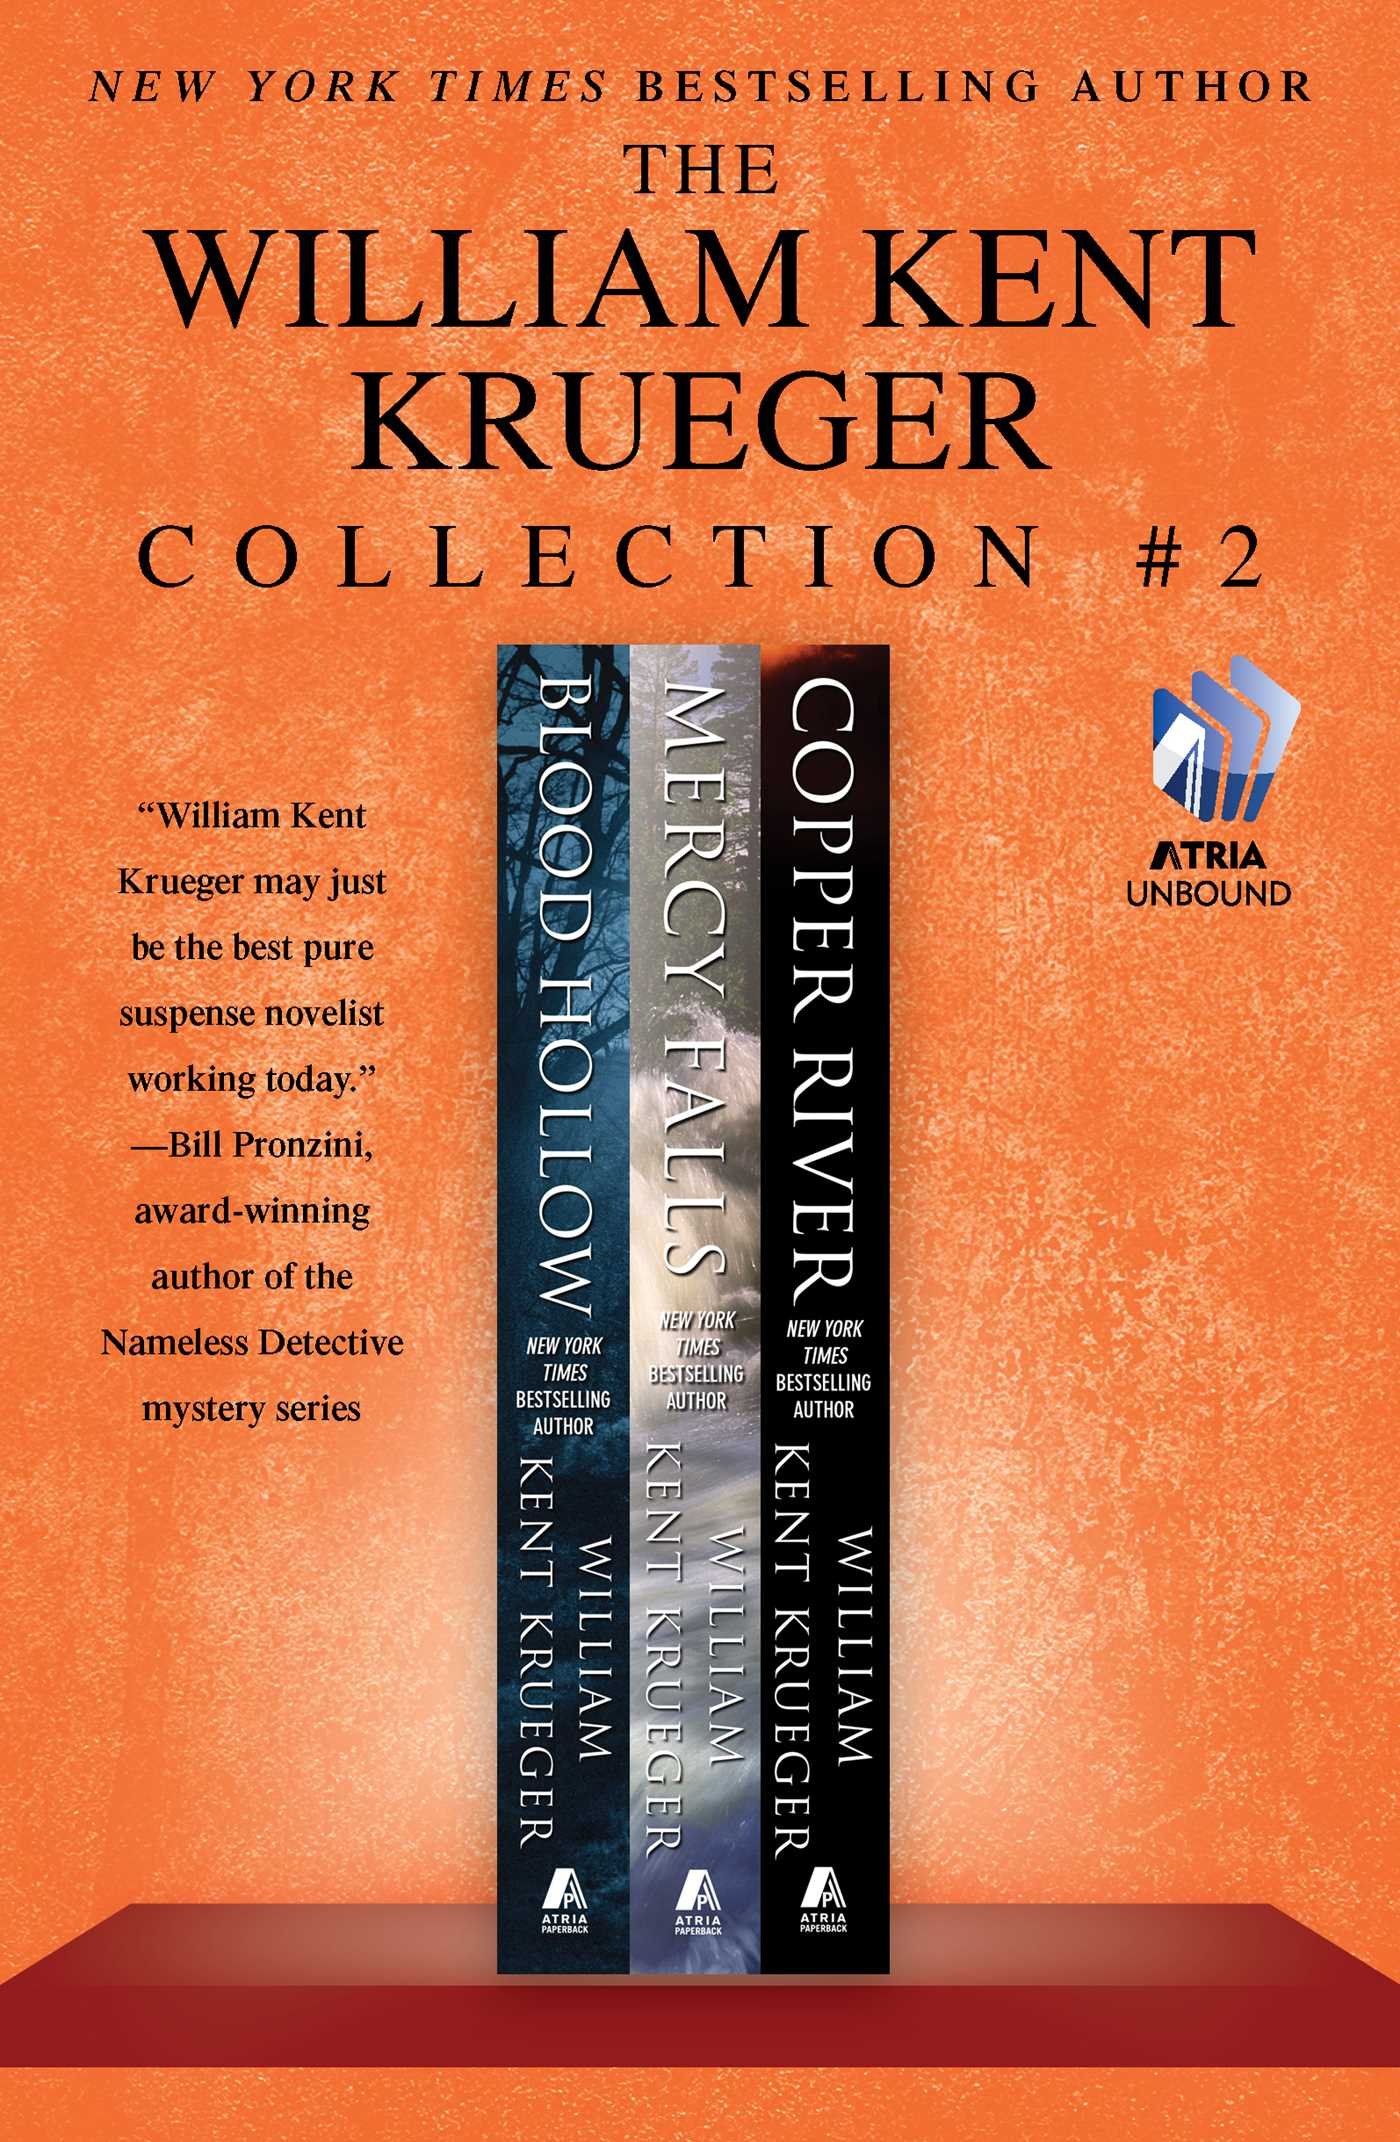 The-william-kent-krueger-collection-2-9781451690484_hr